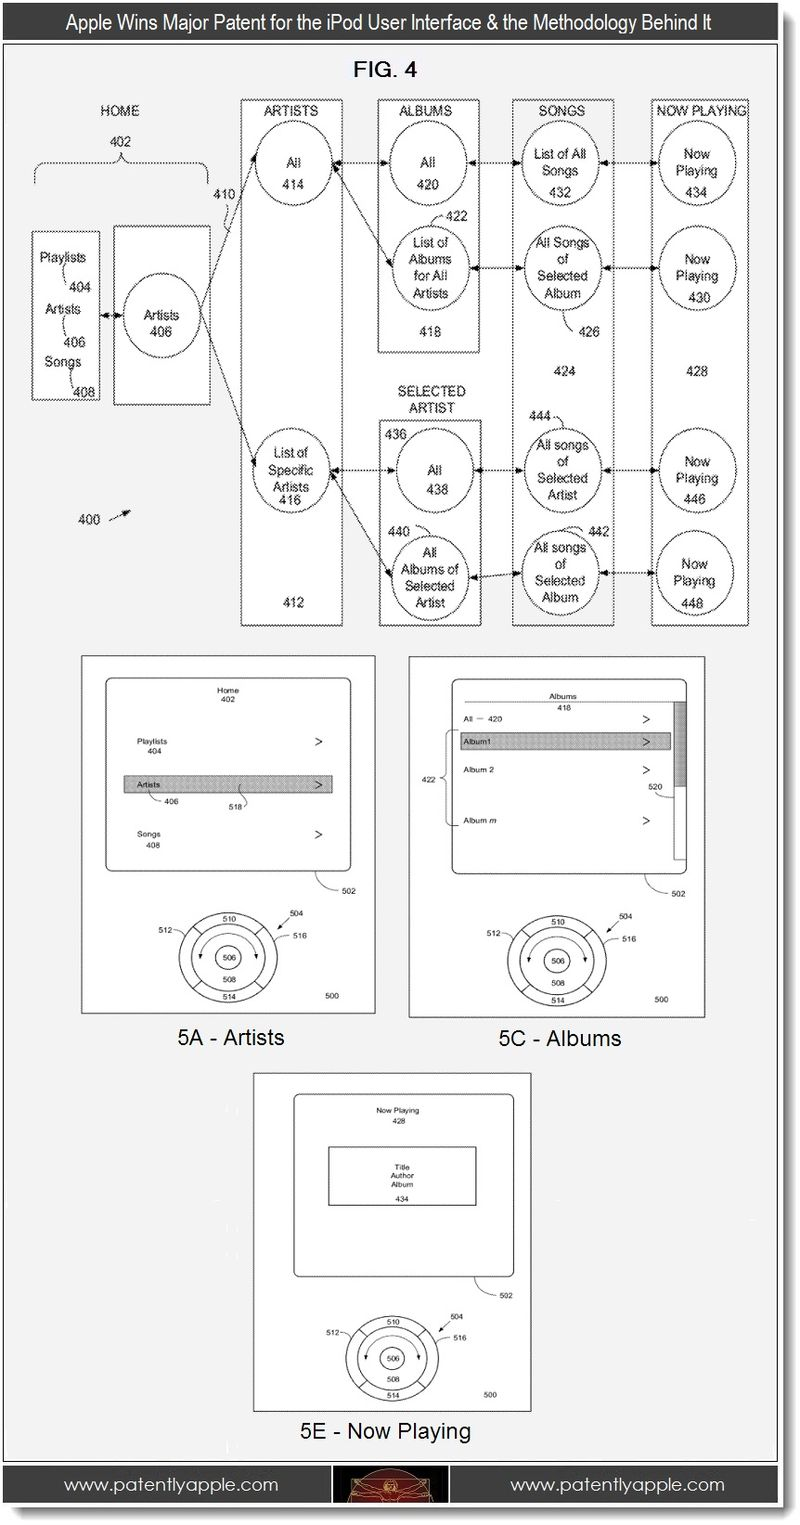 2. Apple Wins Major Patent for the iPod UI & Methodology Behind it